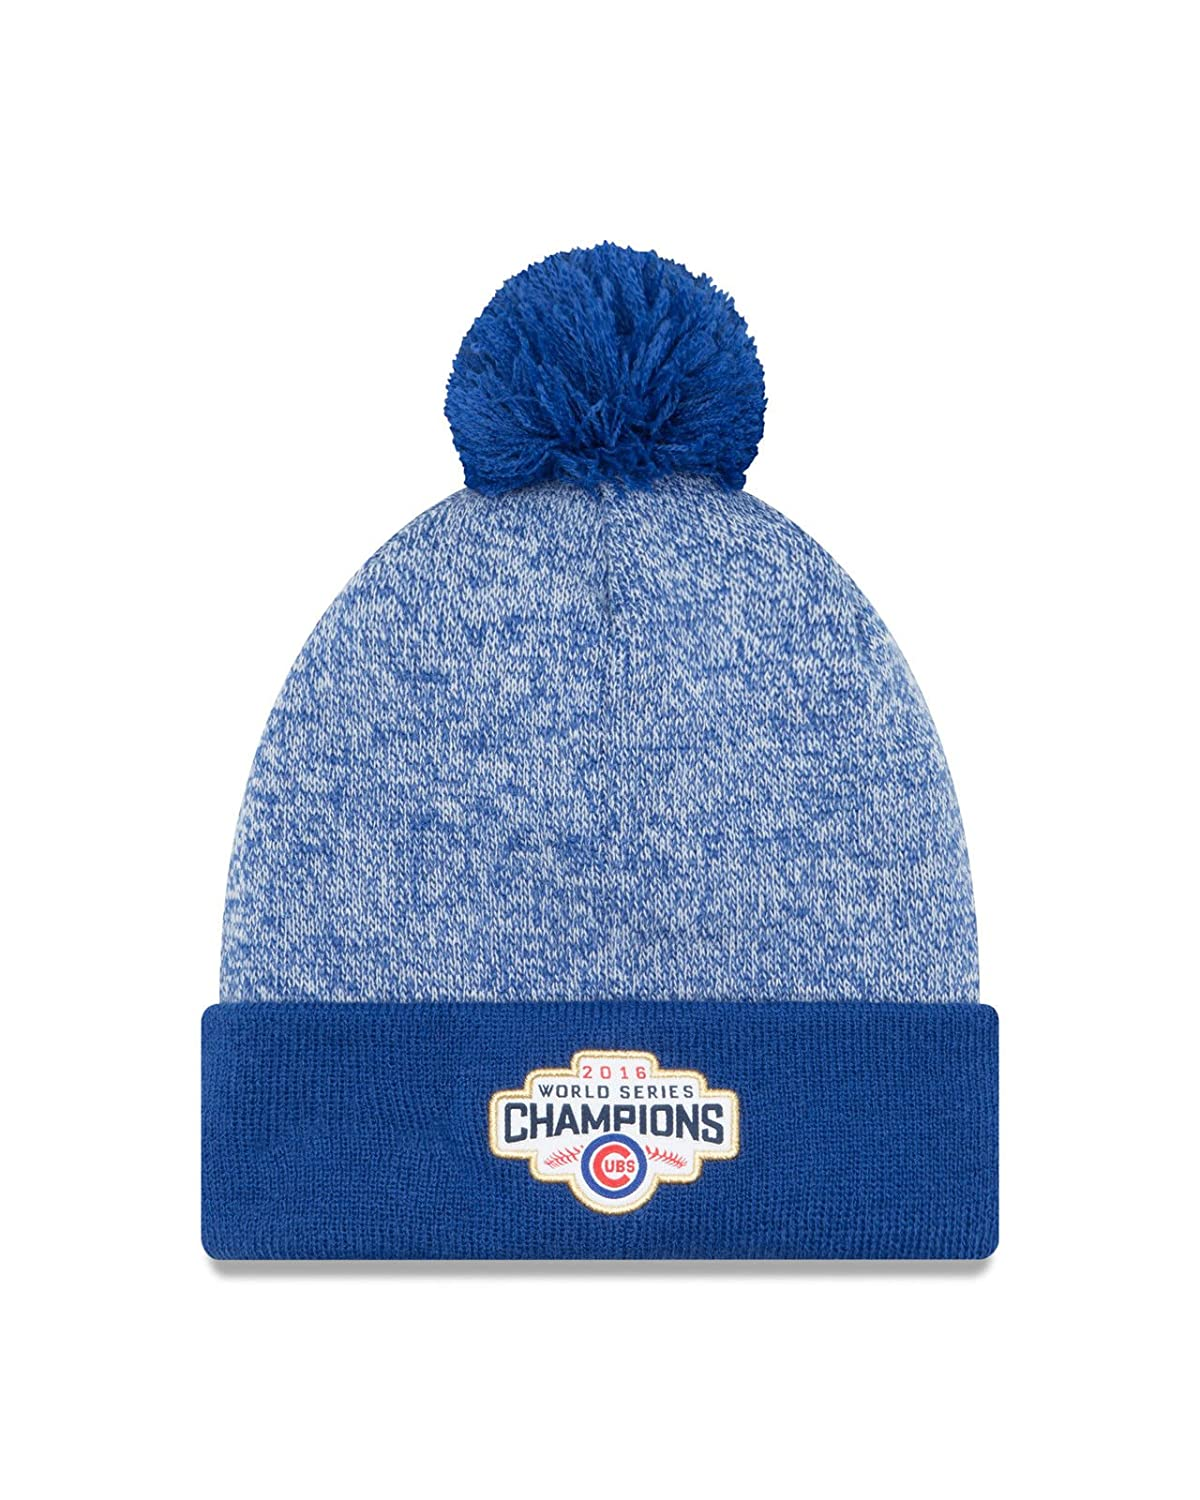 25b77bc847b6a8 ... new zealand amazon new era chicago cubs world series champions knit hat  sports outdoors e8a4c 24287